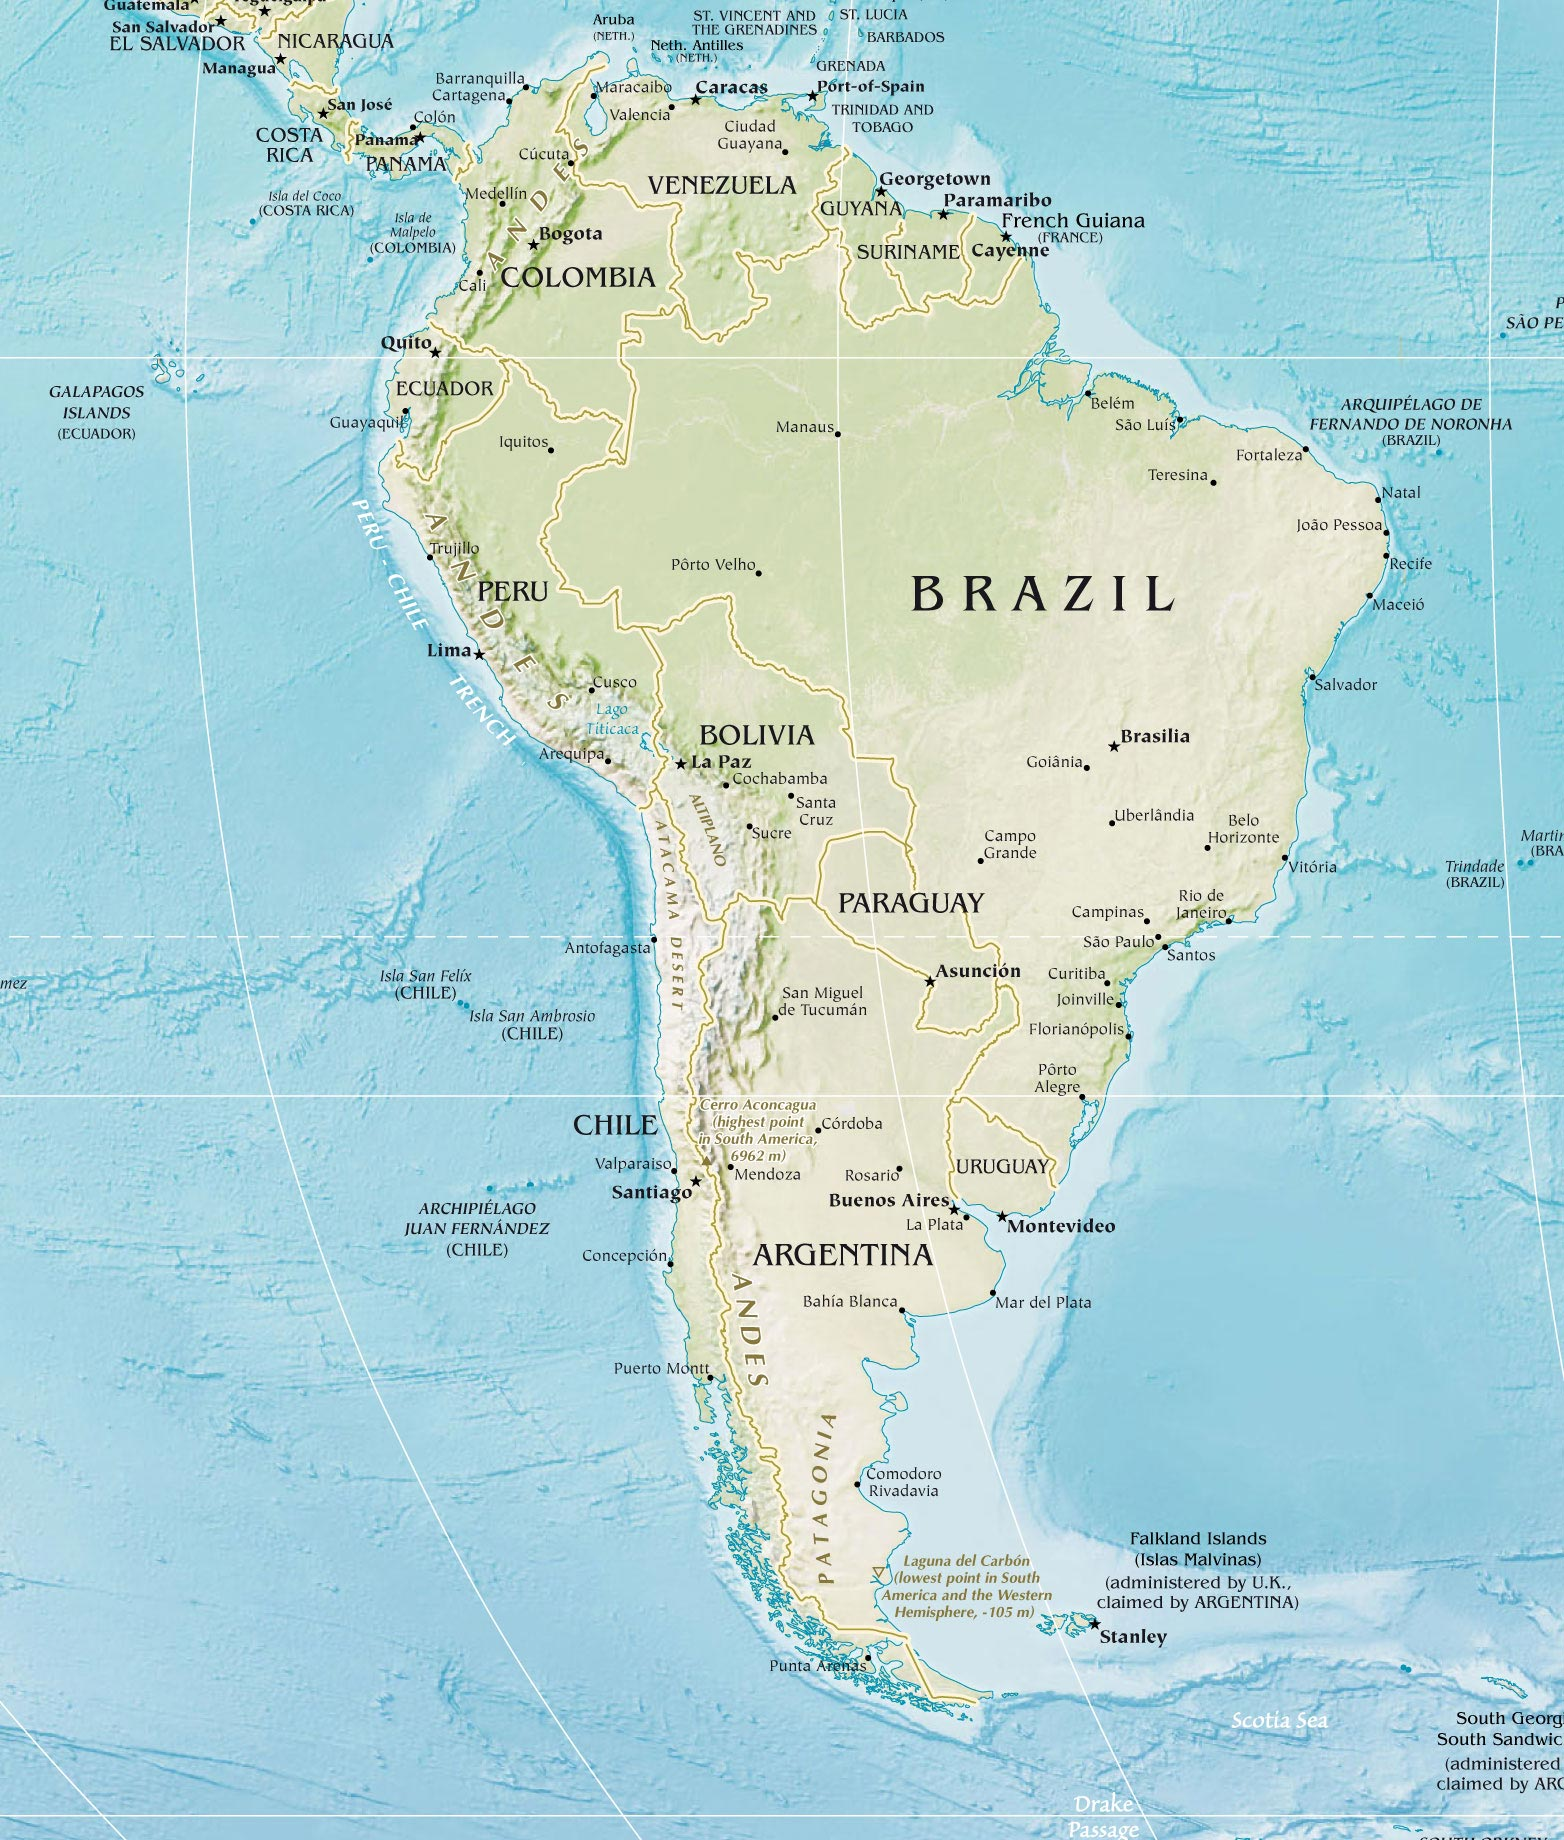 South America Physical Map 2